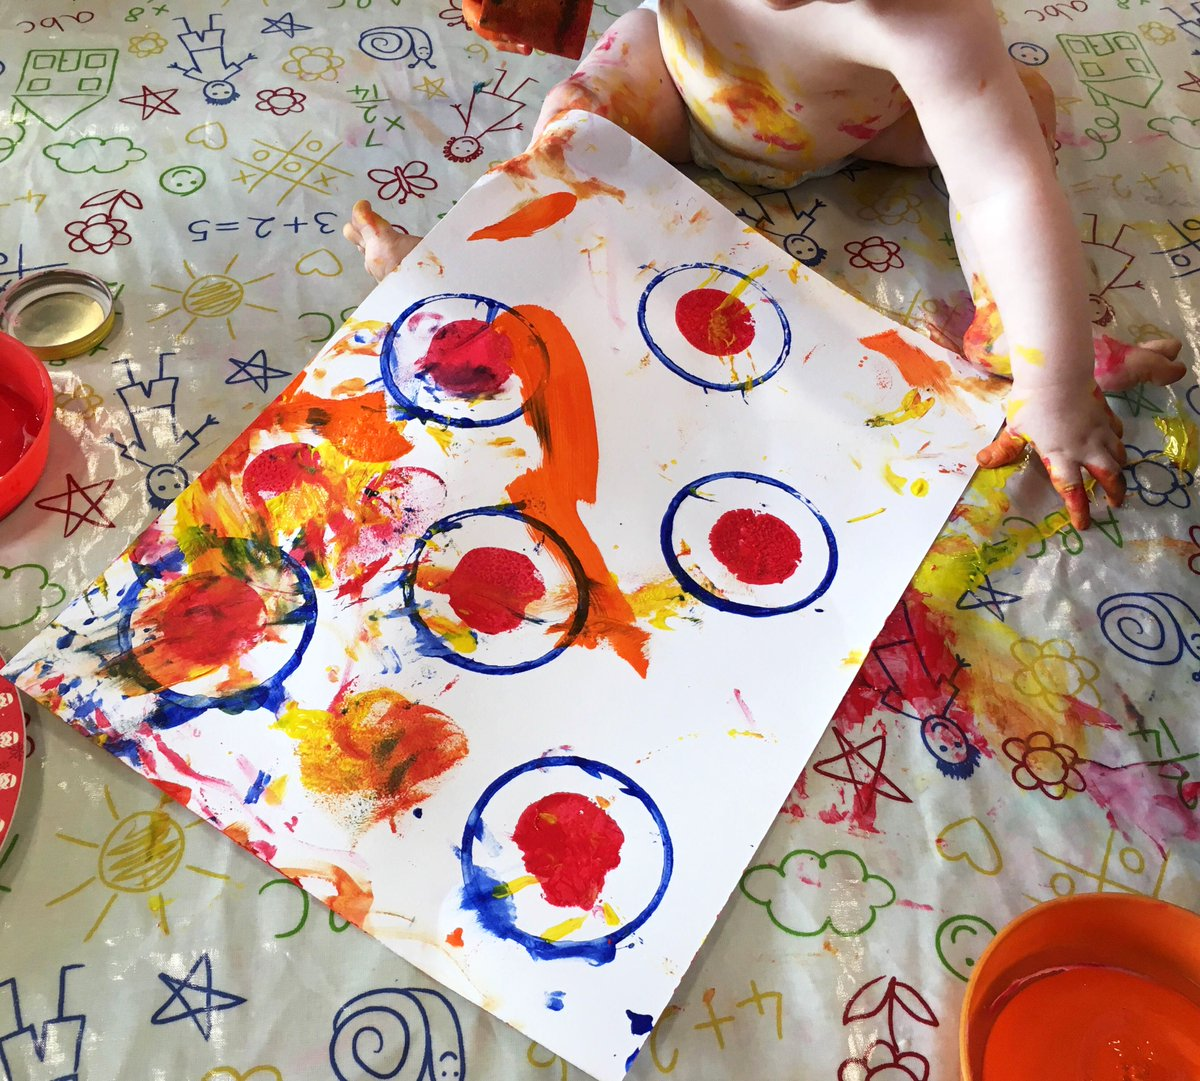 More on the project 'Art at the Start' improve a child's wellbeing? https://t.co/EV1zUuHEyv @hellosephine @ArtattheStart1 @onedundee @UoDPsychology @DCAdundee #researchmatters #connect #engage #ISSR2019 https://t.co/3SLMduLJWq